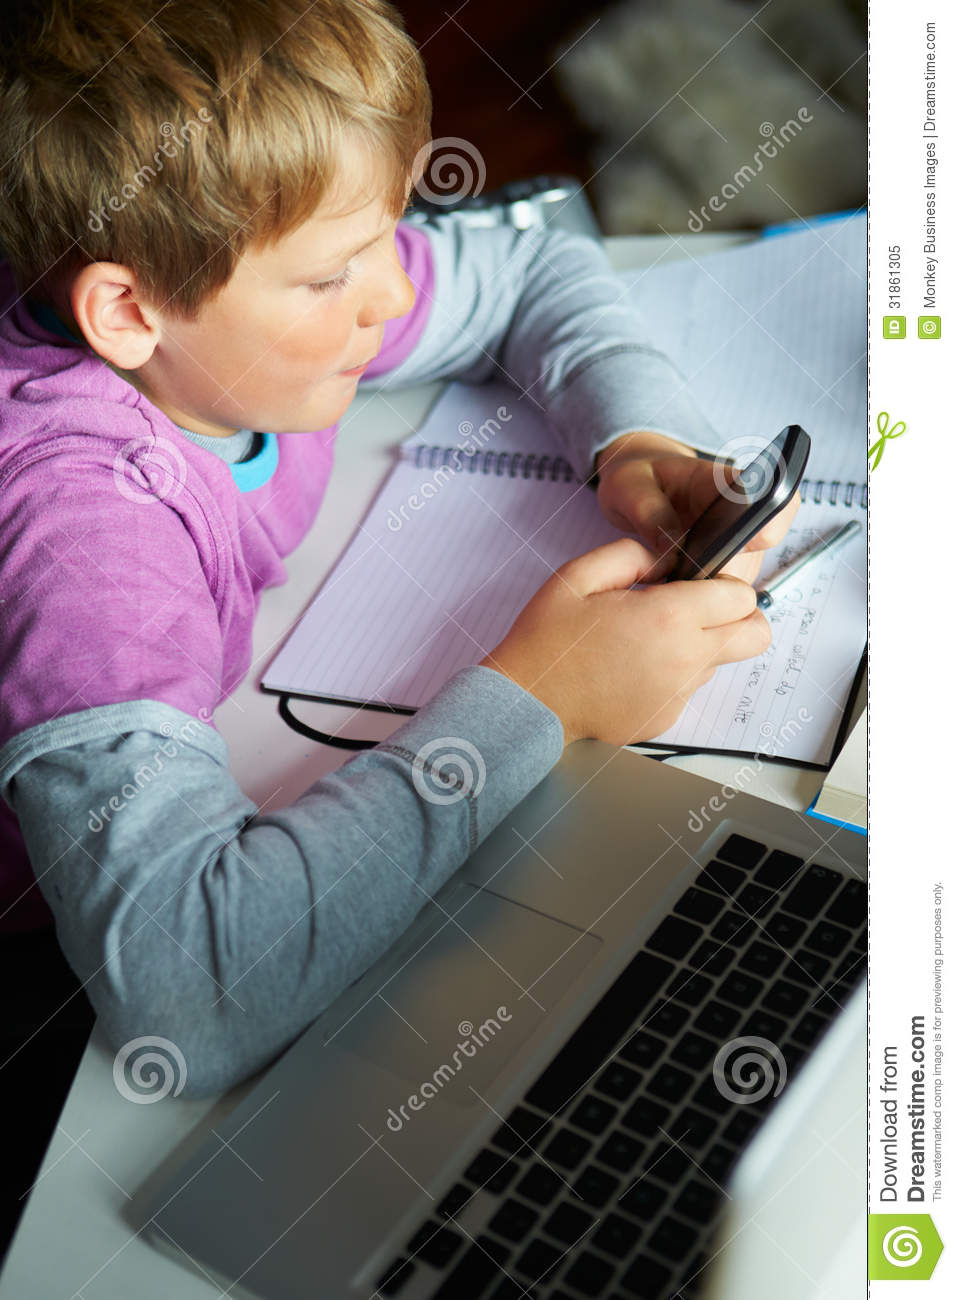 Boy Using Mobile Phone Instead Of Studying In Bedroom